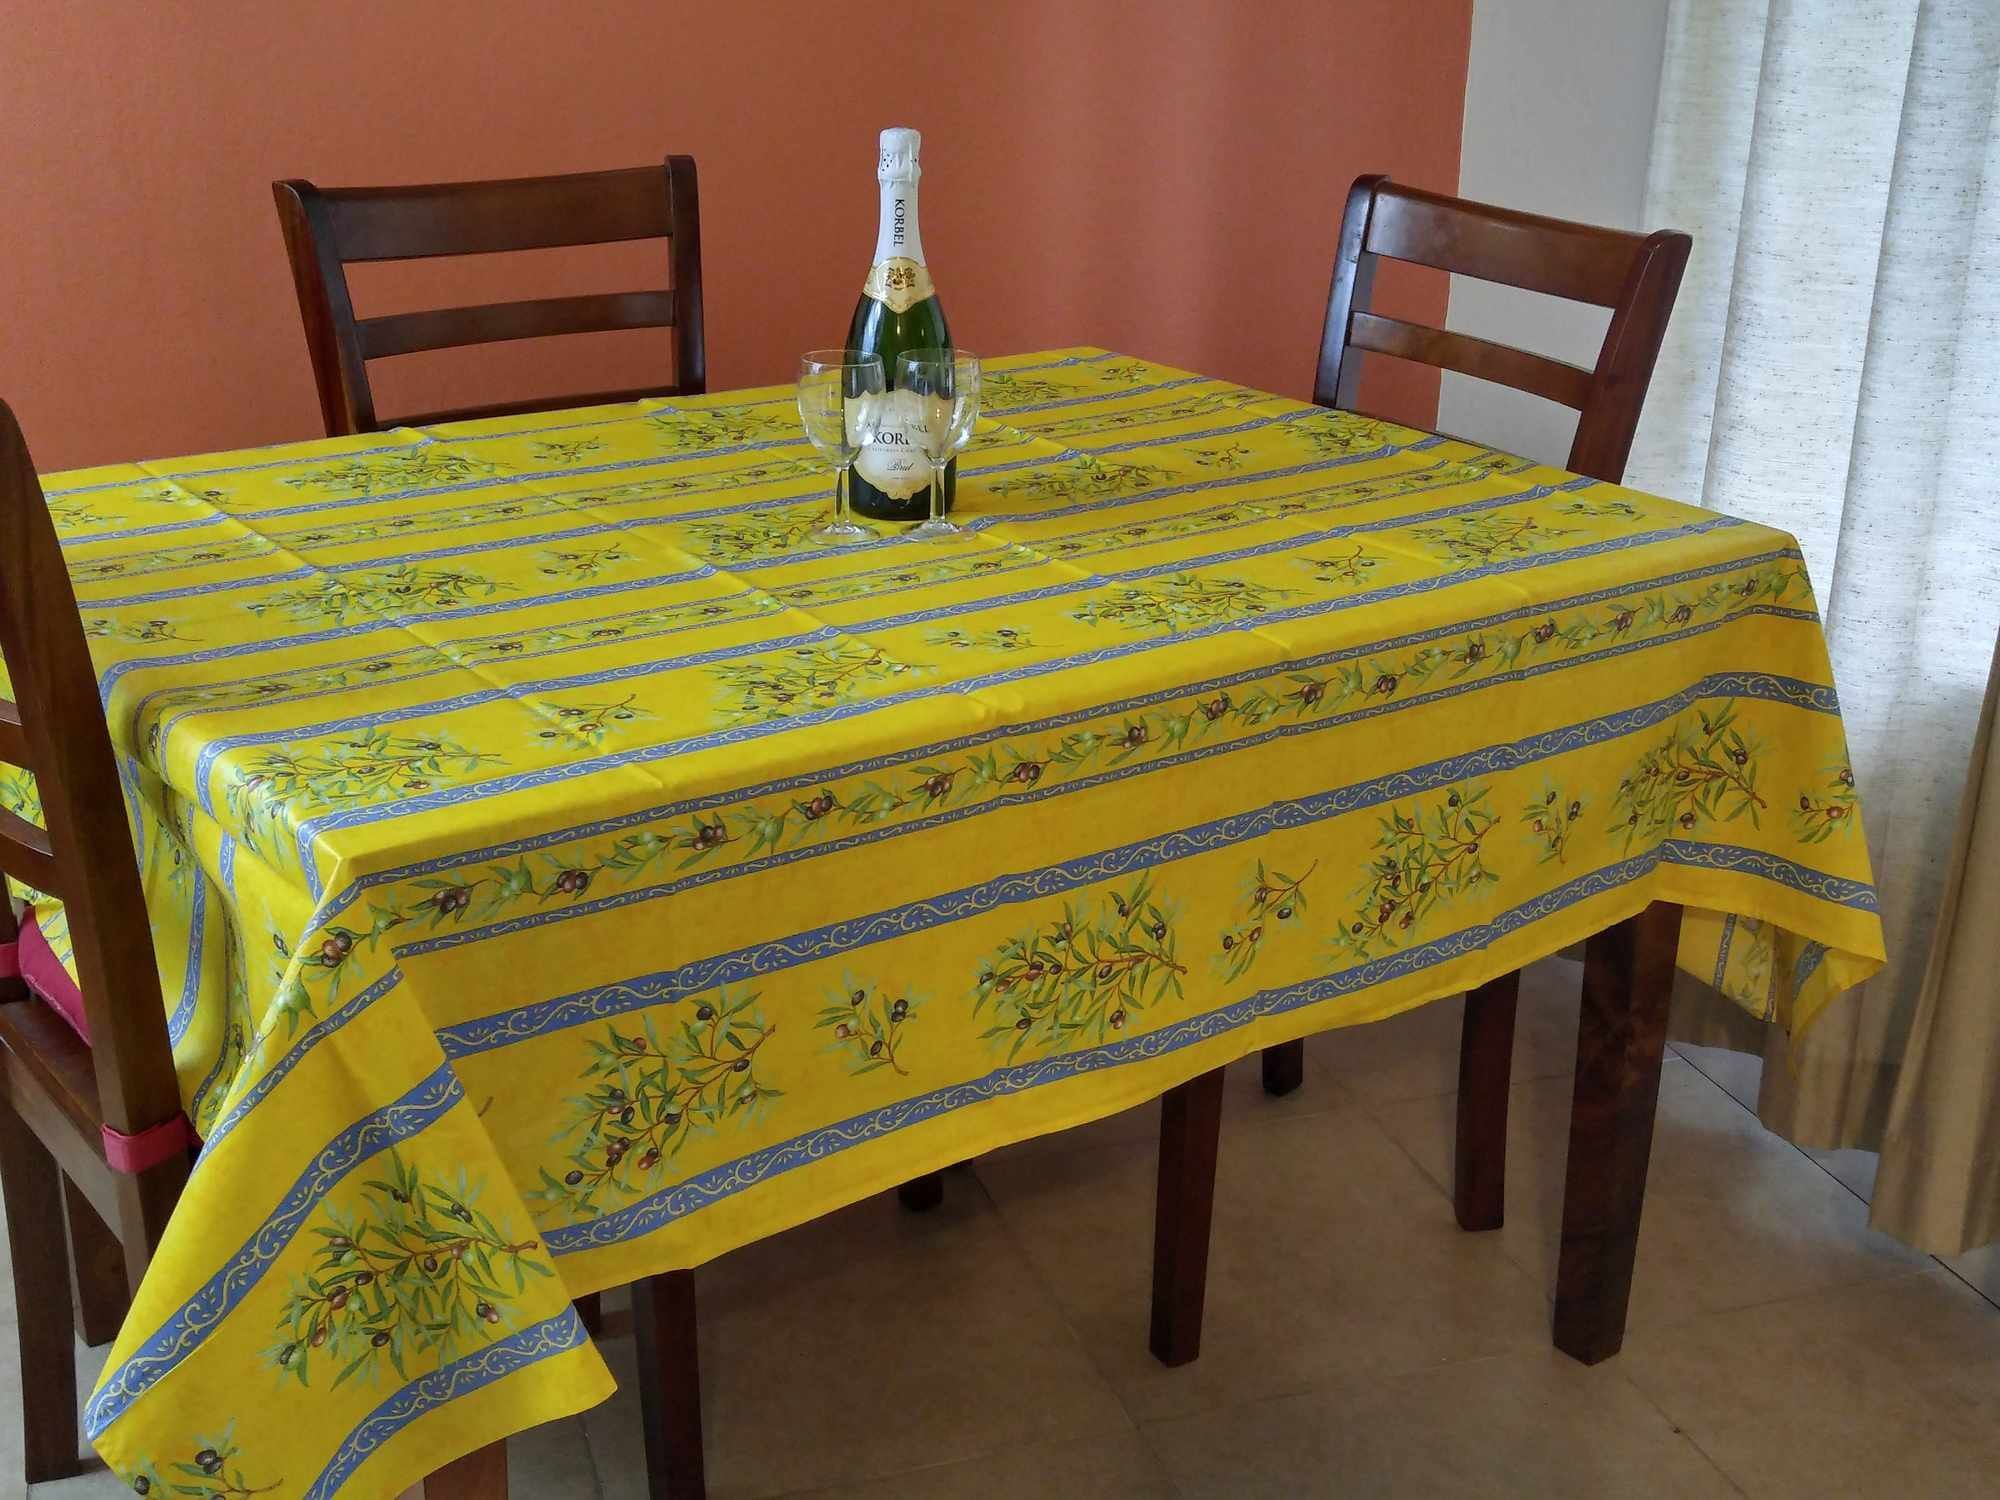 French Tablecloth Provencal Acrylic Coated Cotton Olive Yellow Blue ...